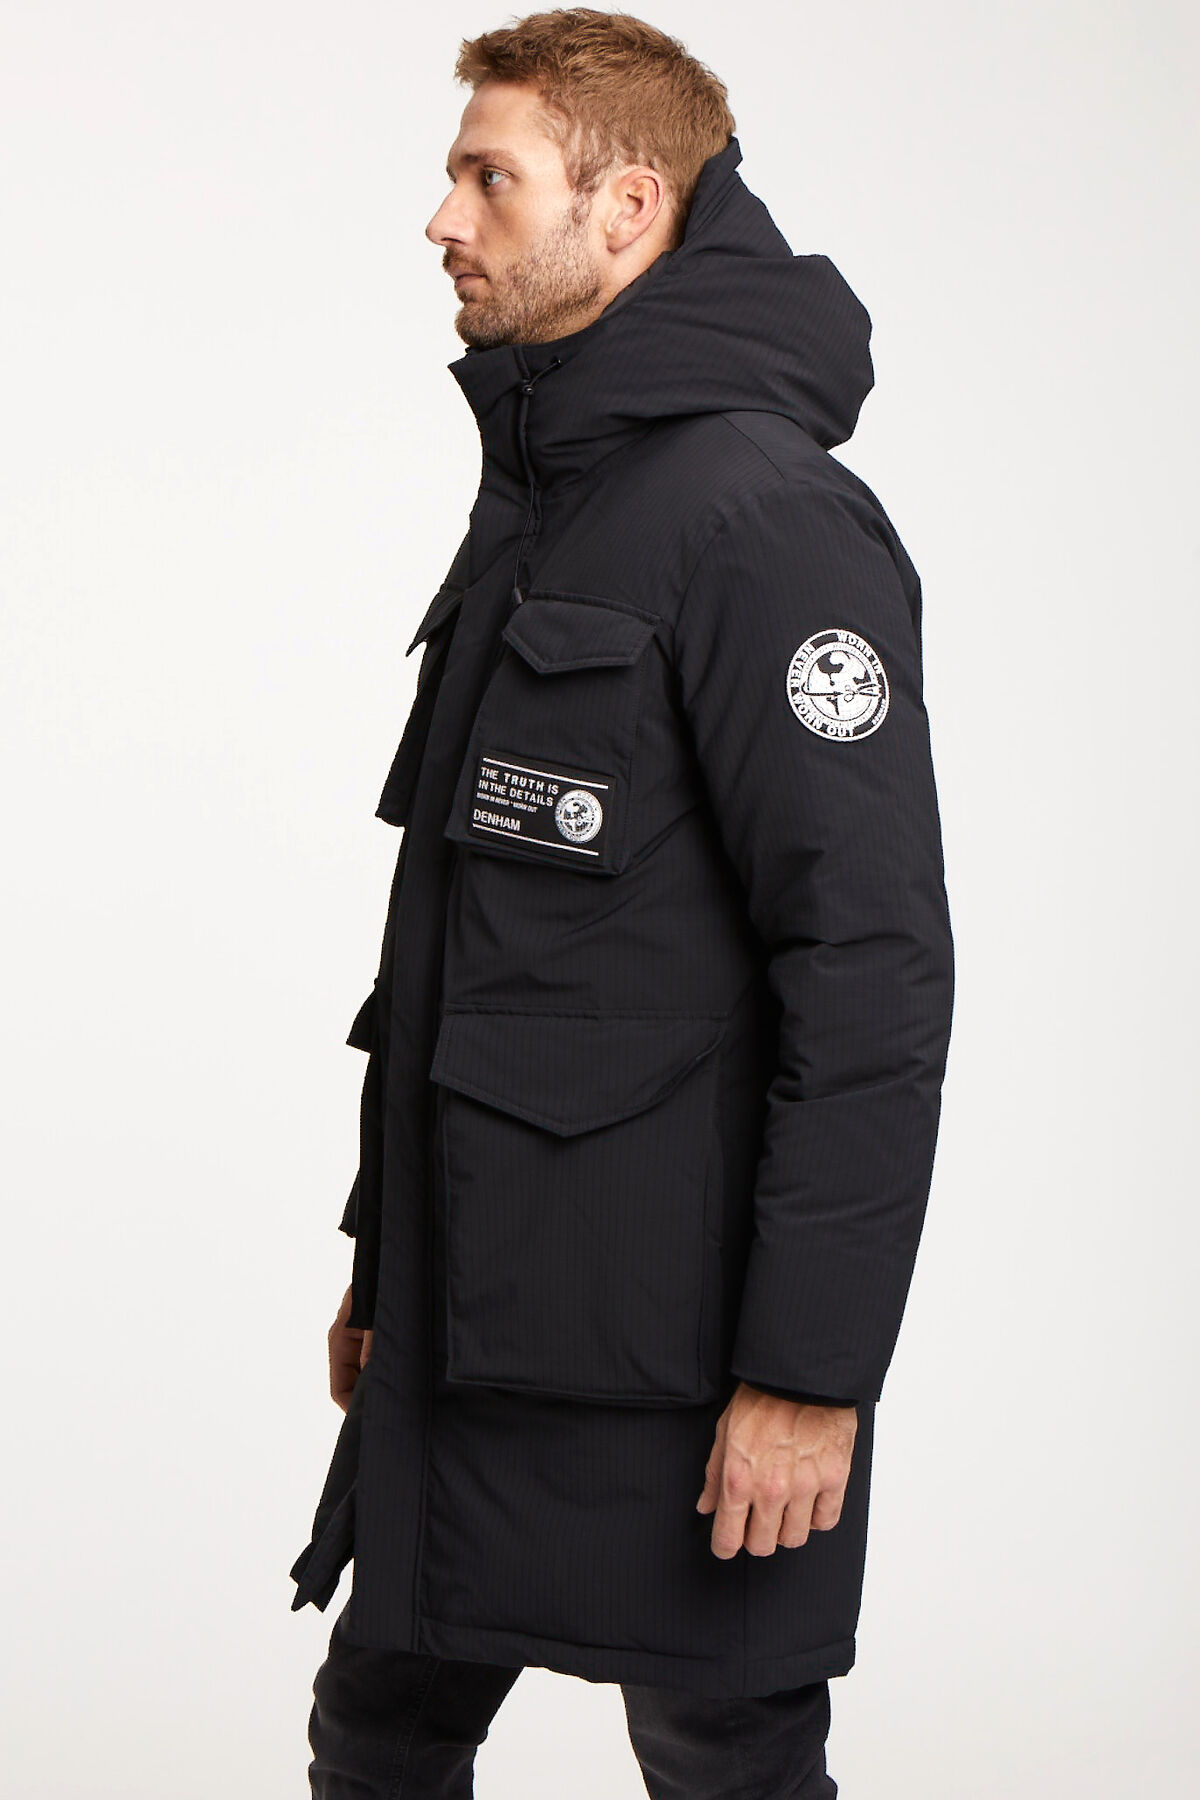 ARCADIA Parka Recycled Polyester & Recycled Down Lining - Regular Fit